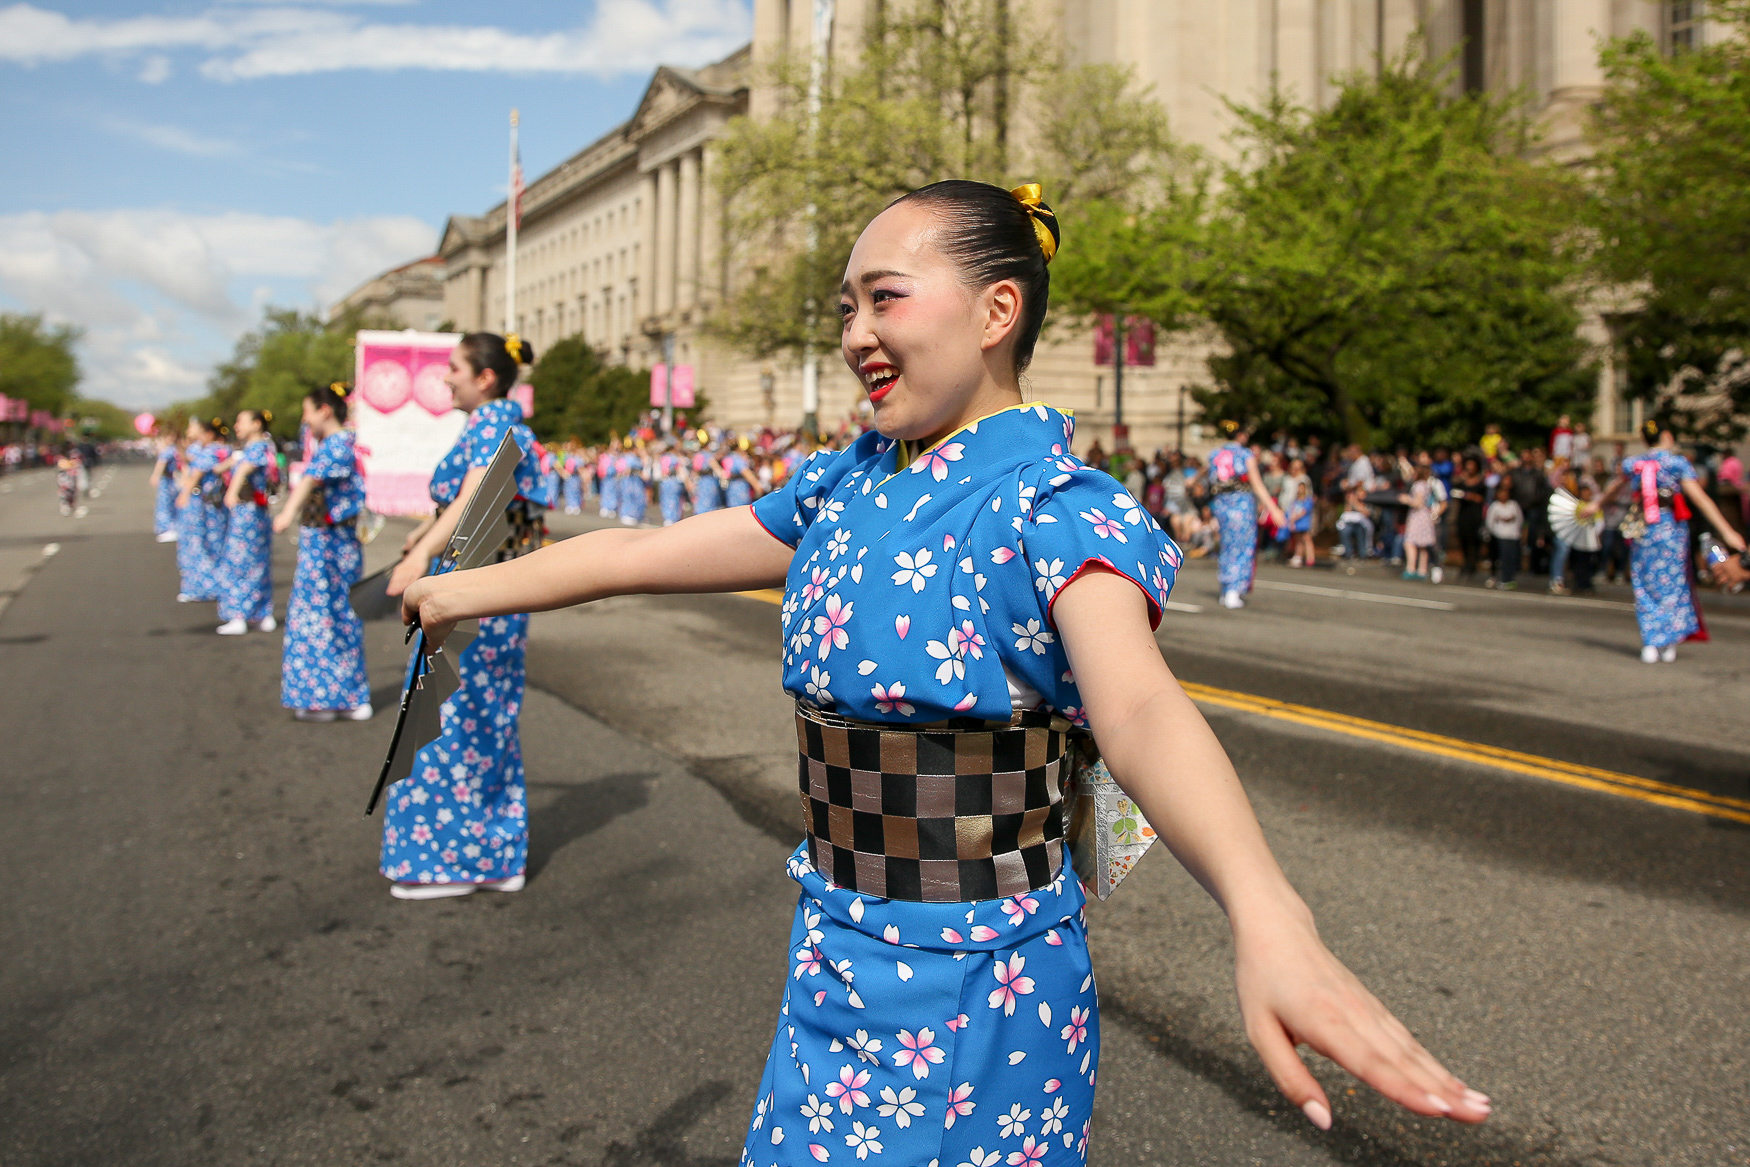 Early morning showers didn't scare away thousands of people who showed up for the 2019 Cherry Blossom Parade. The parade typically marks the end of the official cherry blossom season. This year's grand marshall was{ }Anthony Anderson, a comedian and actor best known for his role in 'Blackish' and the acts included marching bands from across the country, dancers and drummers from Japan{ } and locals like the Racing Presidents. (Amanda Andrade-Rhoades/DC Refined)